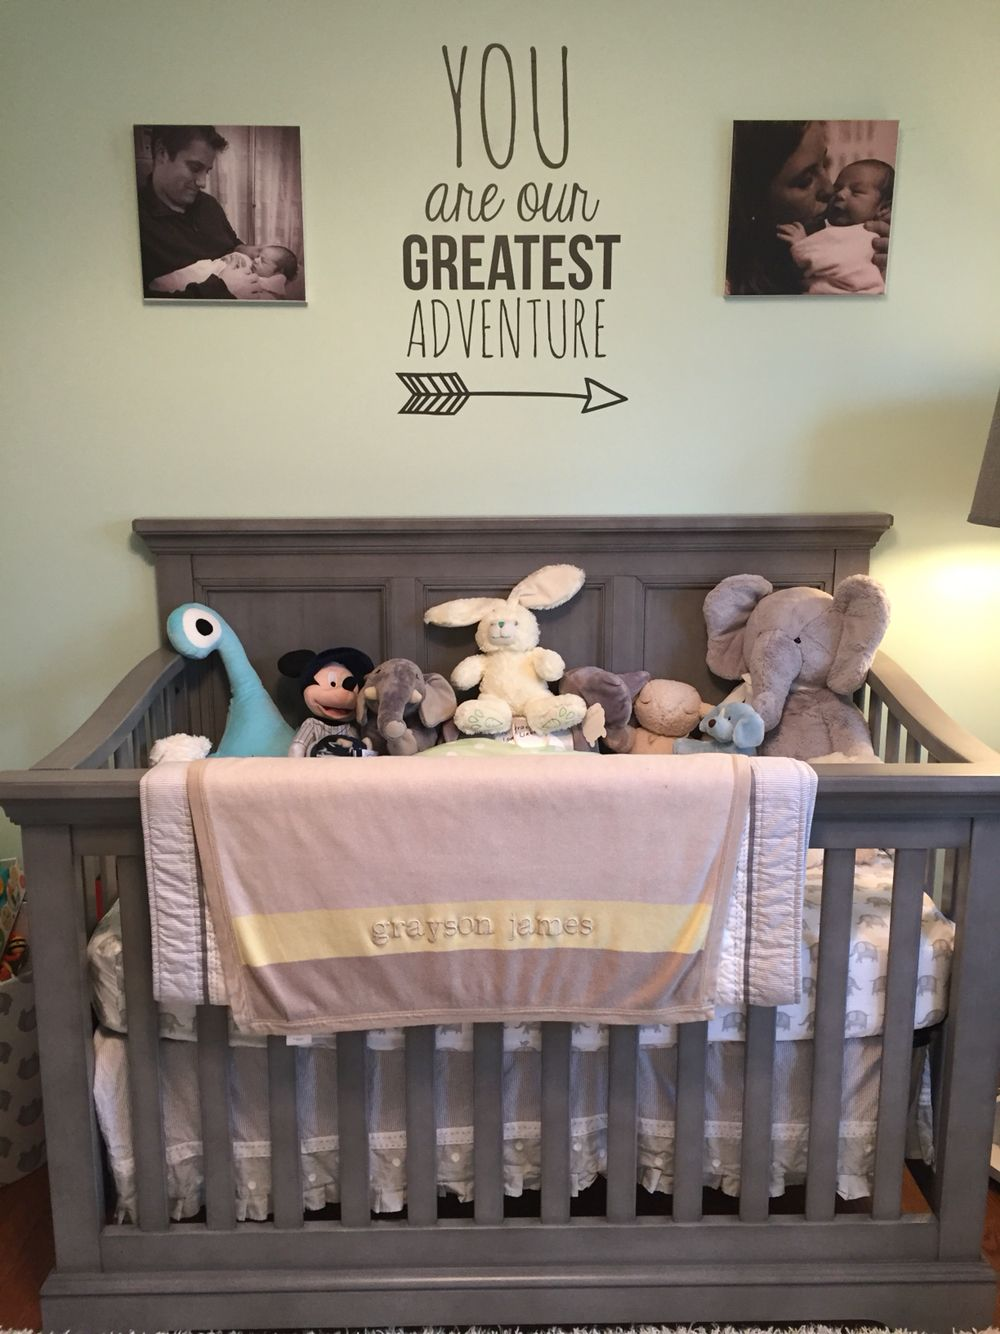 Our Little Baby Boy S Neutral Room: Gender Neutral Nursery In Mint, Grey & Yellow. You Are Our